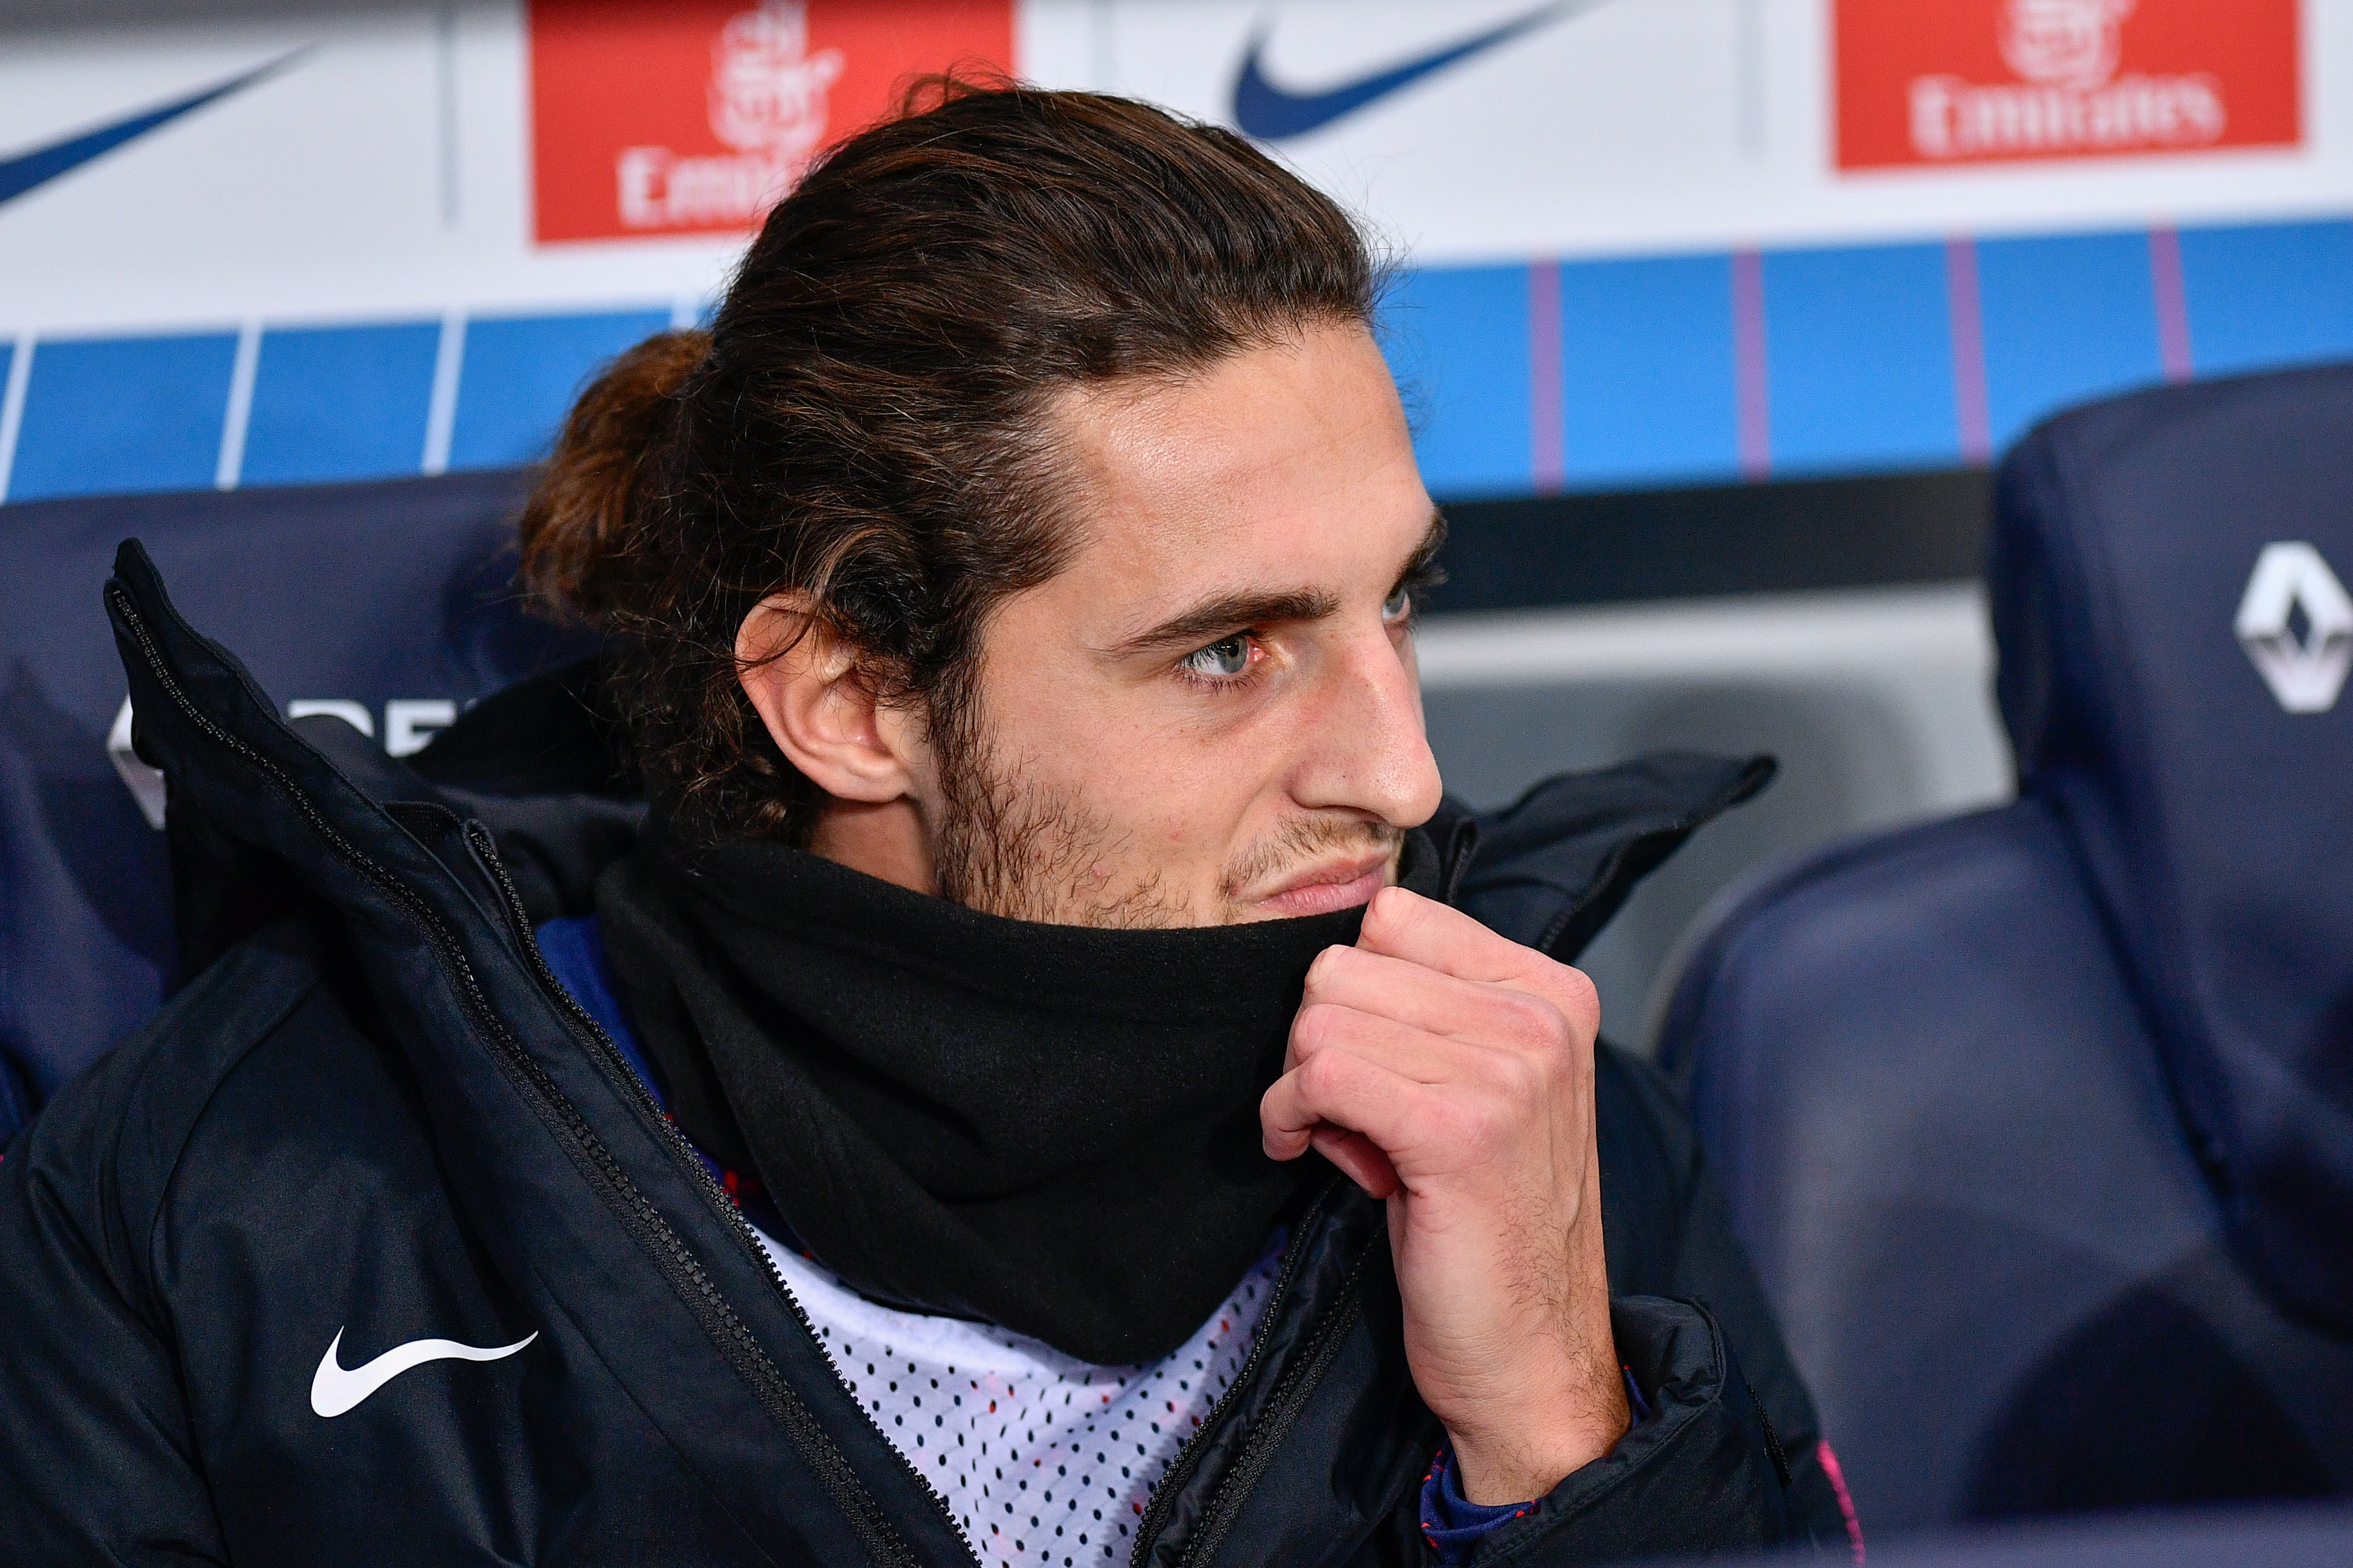 Rabiot has been sat watching the team play a lot this season. Image: PA Images